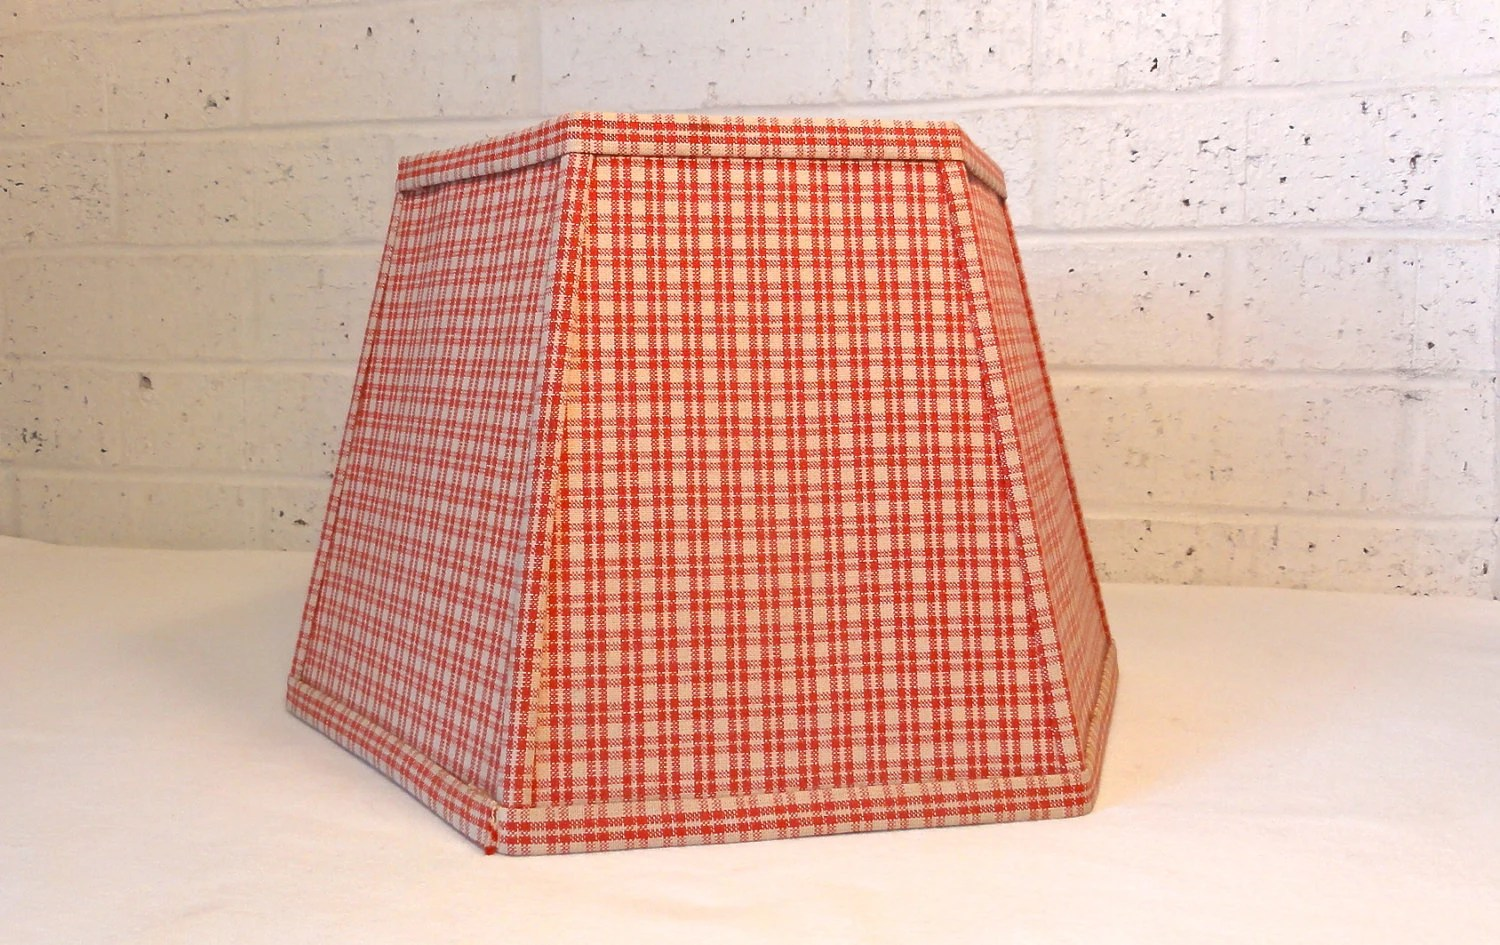 Vintage Red Plaid Lamp Shade / hexagonal shade - Bluebell